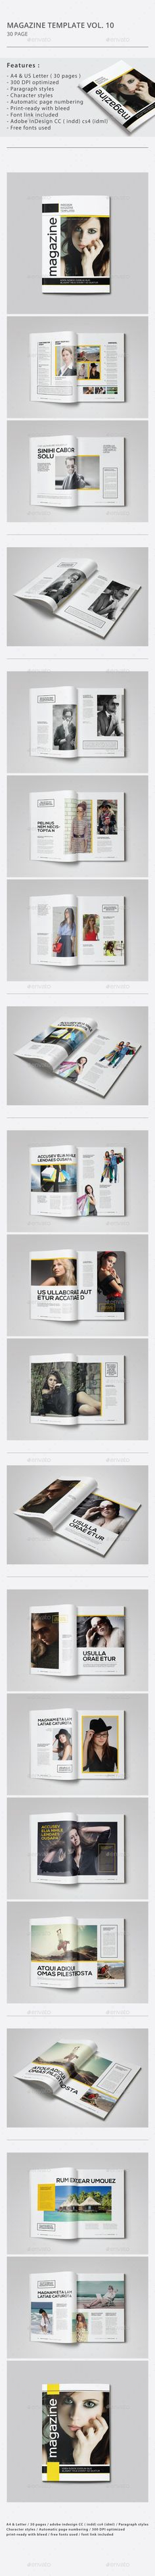 Indesign Magazine Template | #magazinetemplate | Download: http://graphicriver.net/item/indesign-magazine-template-vol10/9918945?ref=ksioks